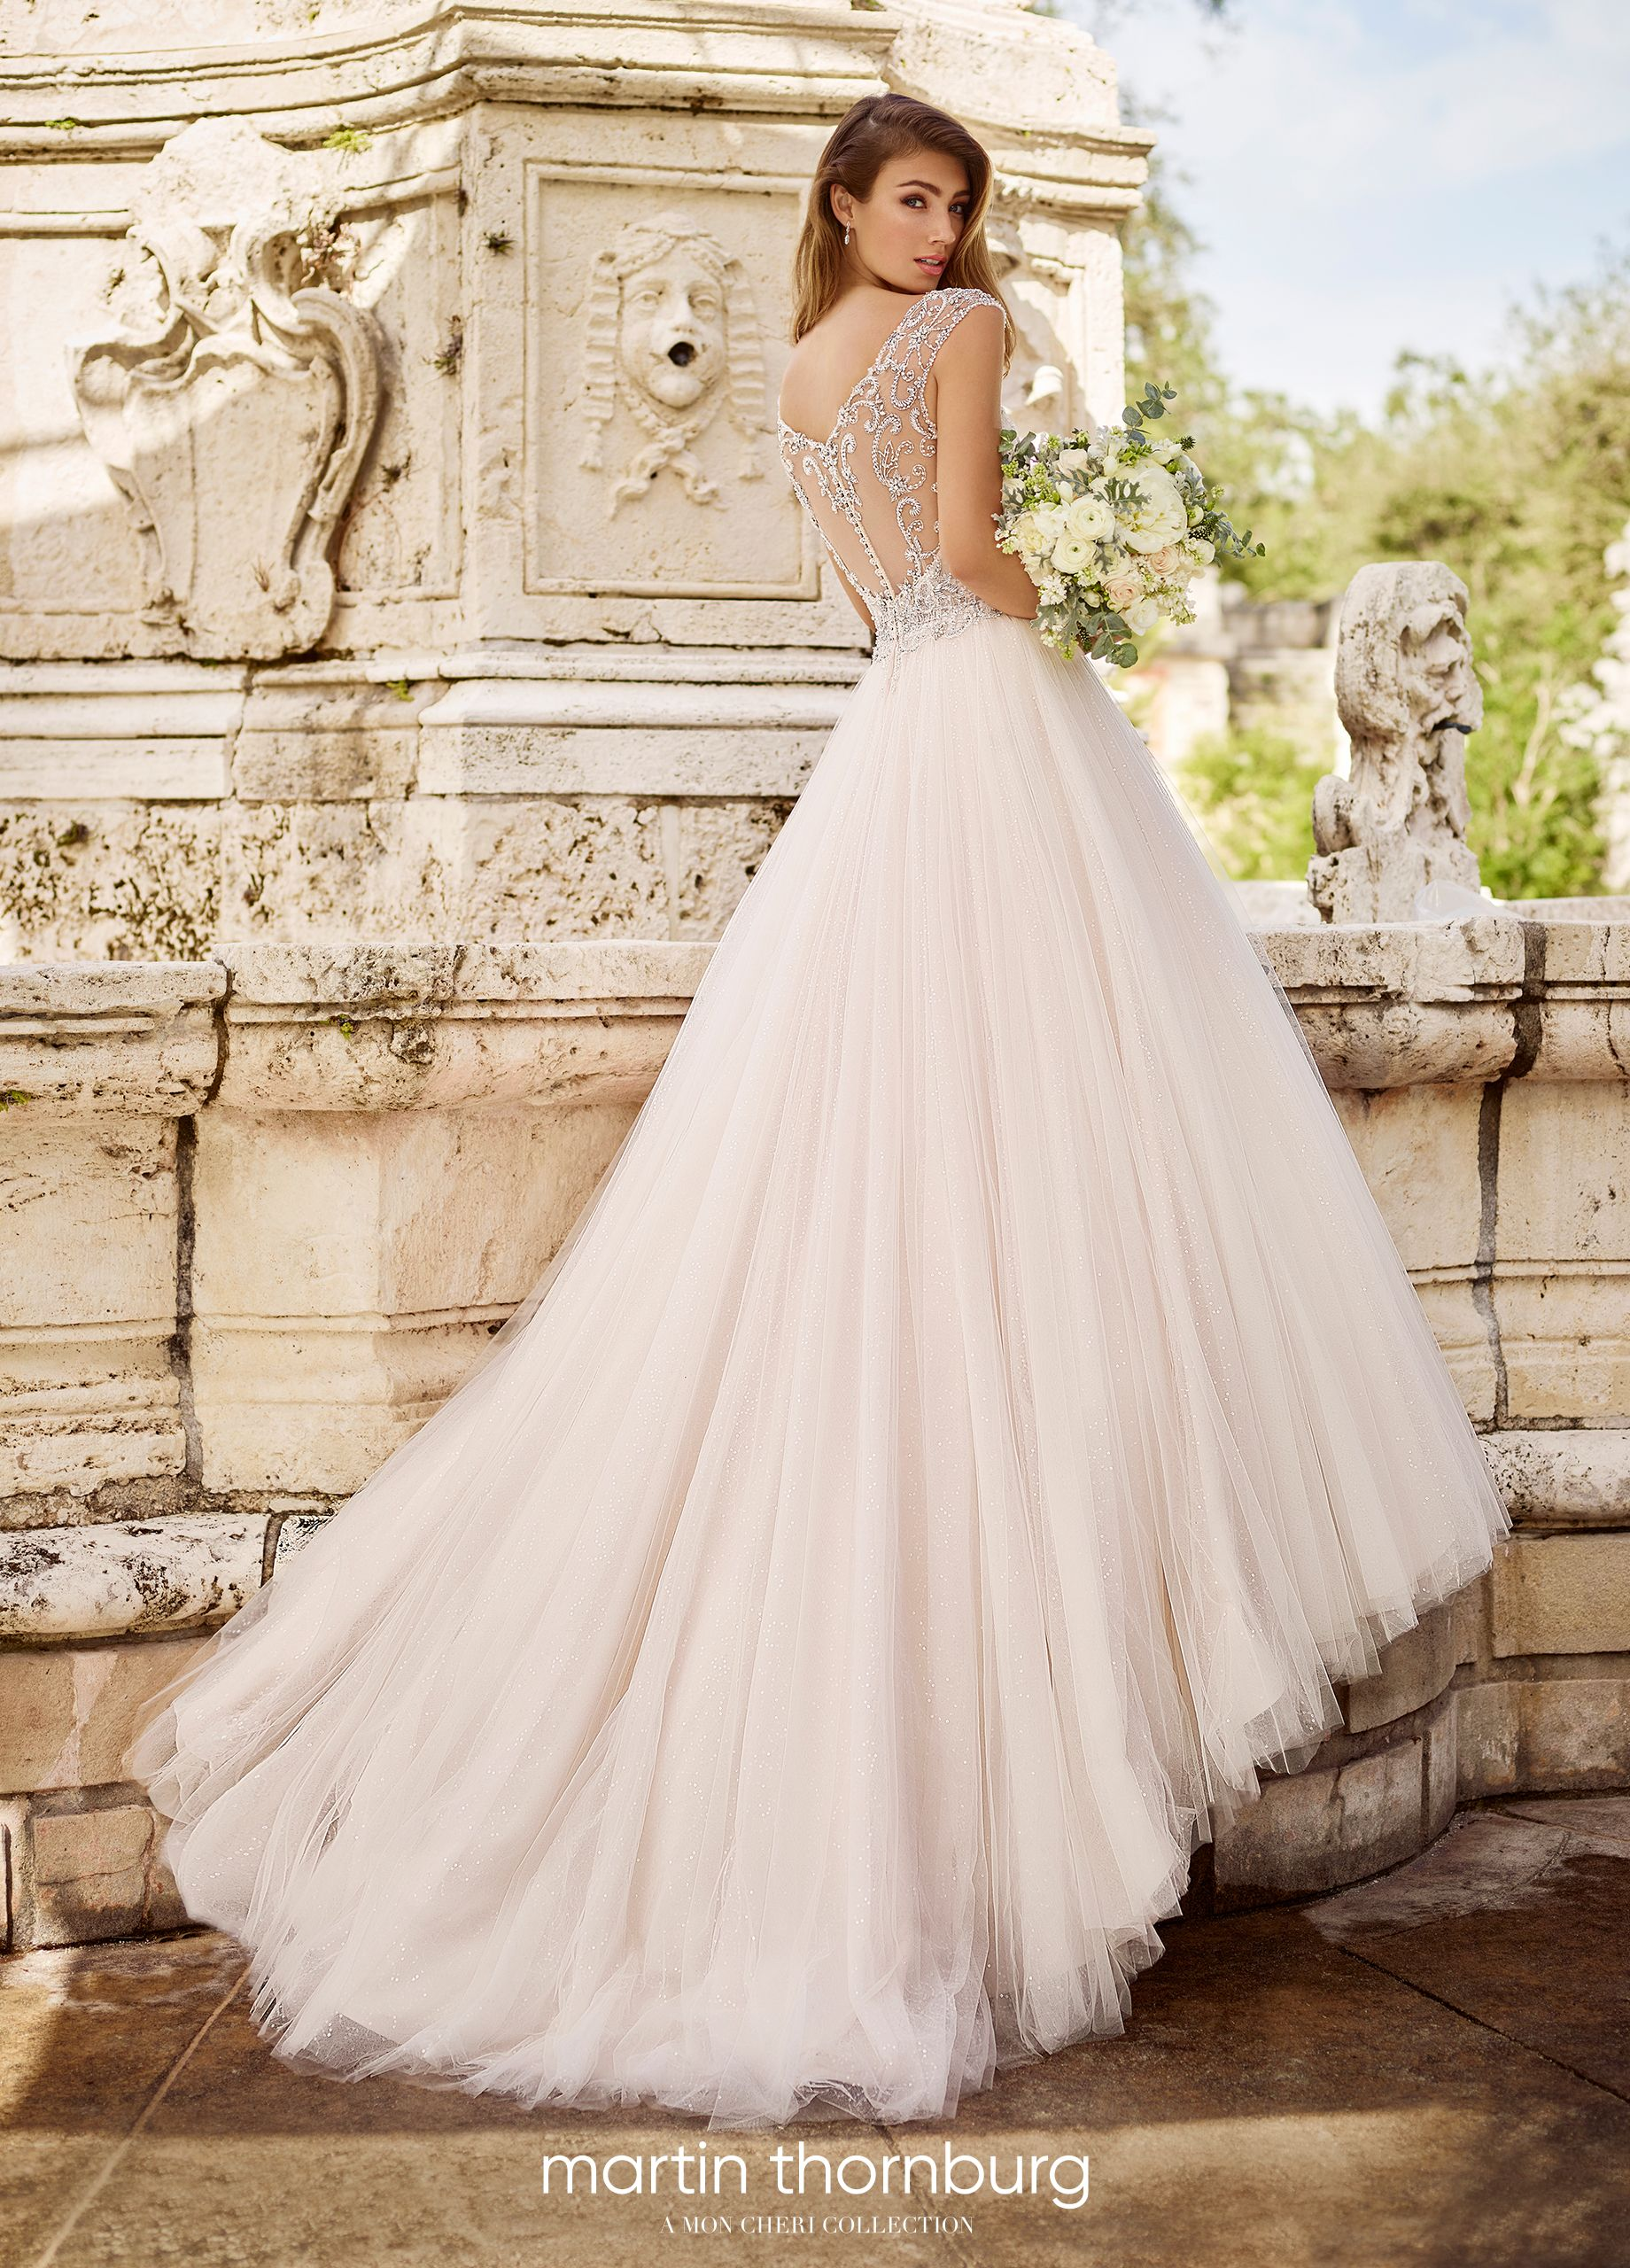 Lace and Tulle Ballgown Wedding Dress with Beaded Illusion Cap